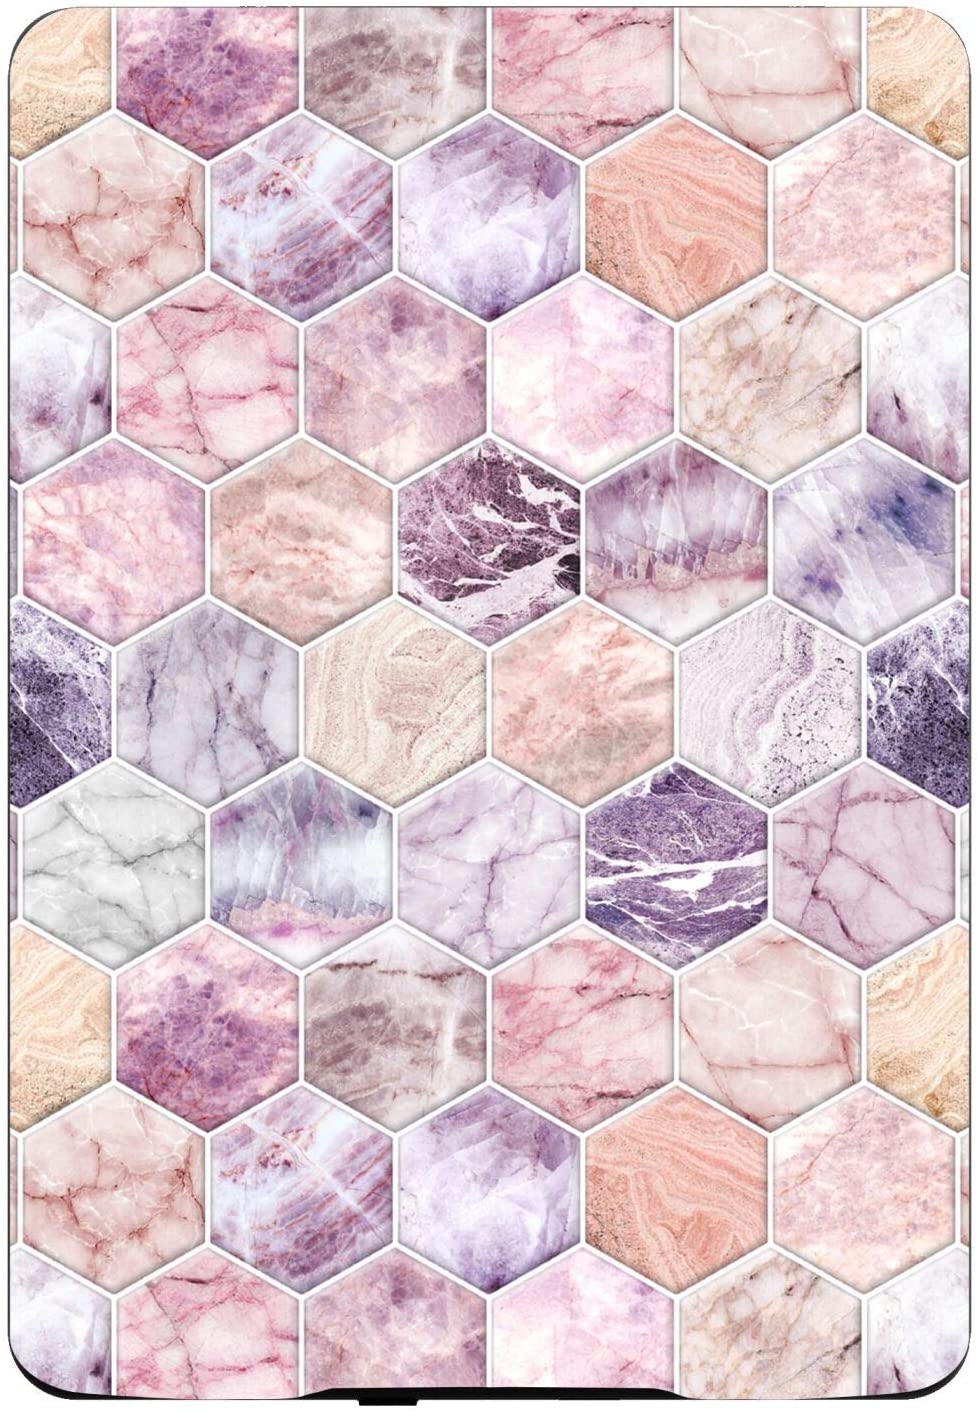 Head Case Designs Officially Licensed Micklyn Le Feuvre Rose Quartz and Amethyst Stone and Hexagon Tile Marble Patterns Glossy Vinyl Sticker Skin Decal Compatible with Kindle Paperwhite 1/2 / 3